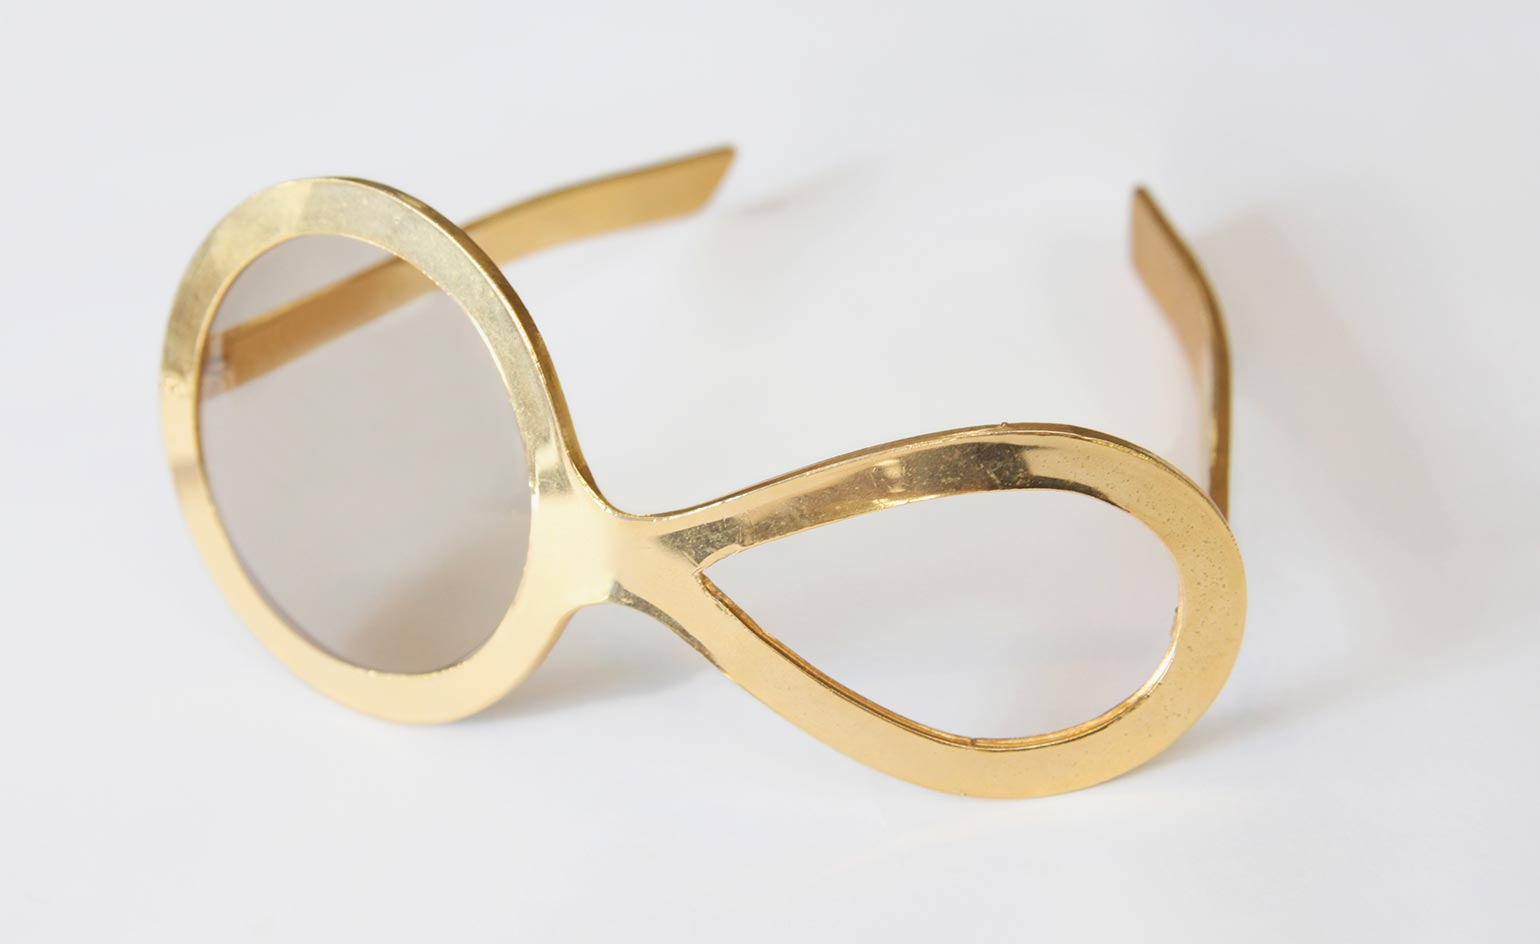 Sunglasses, By Pierre Cardin, 1960, From The Claude Samuel Collection.